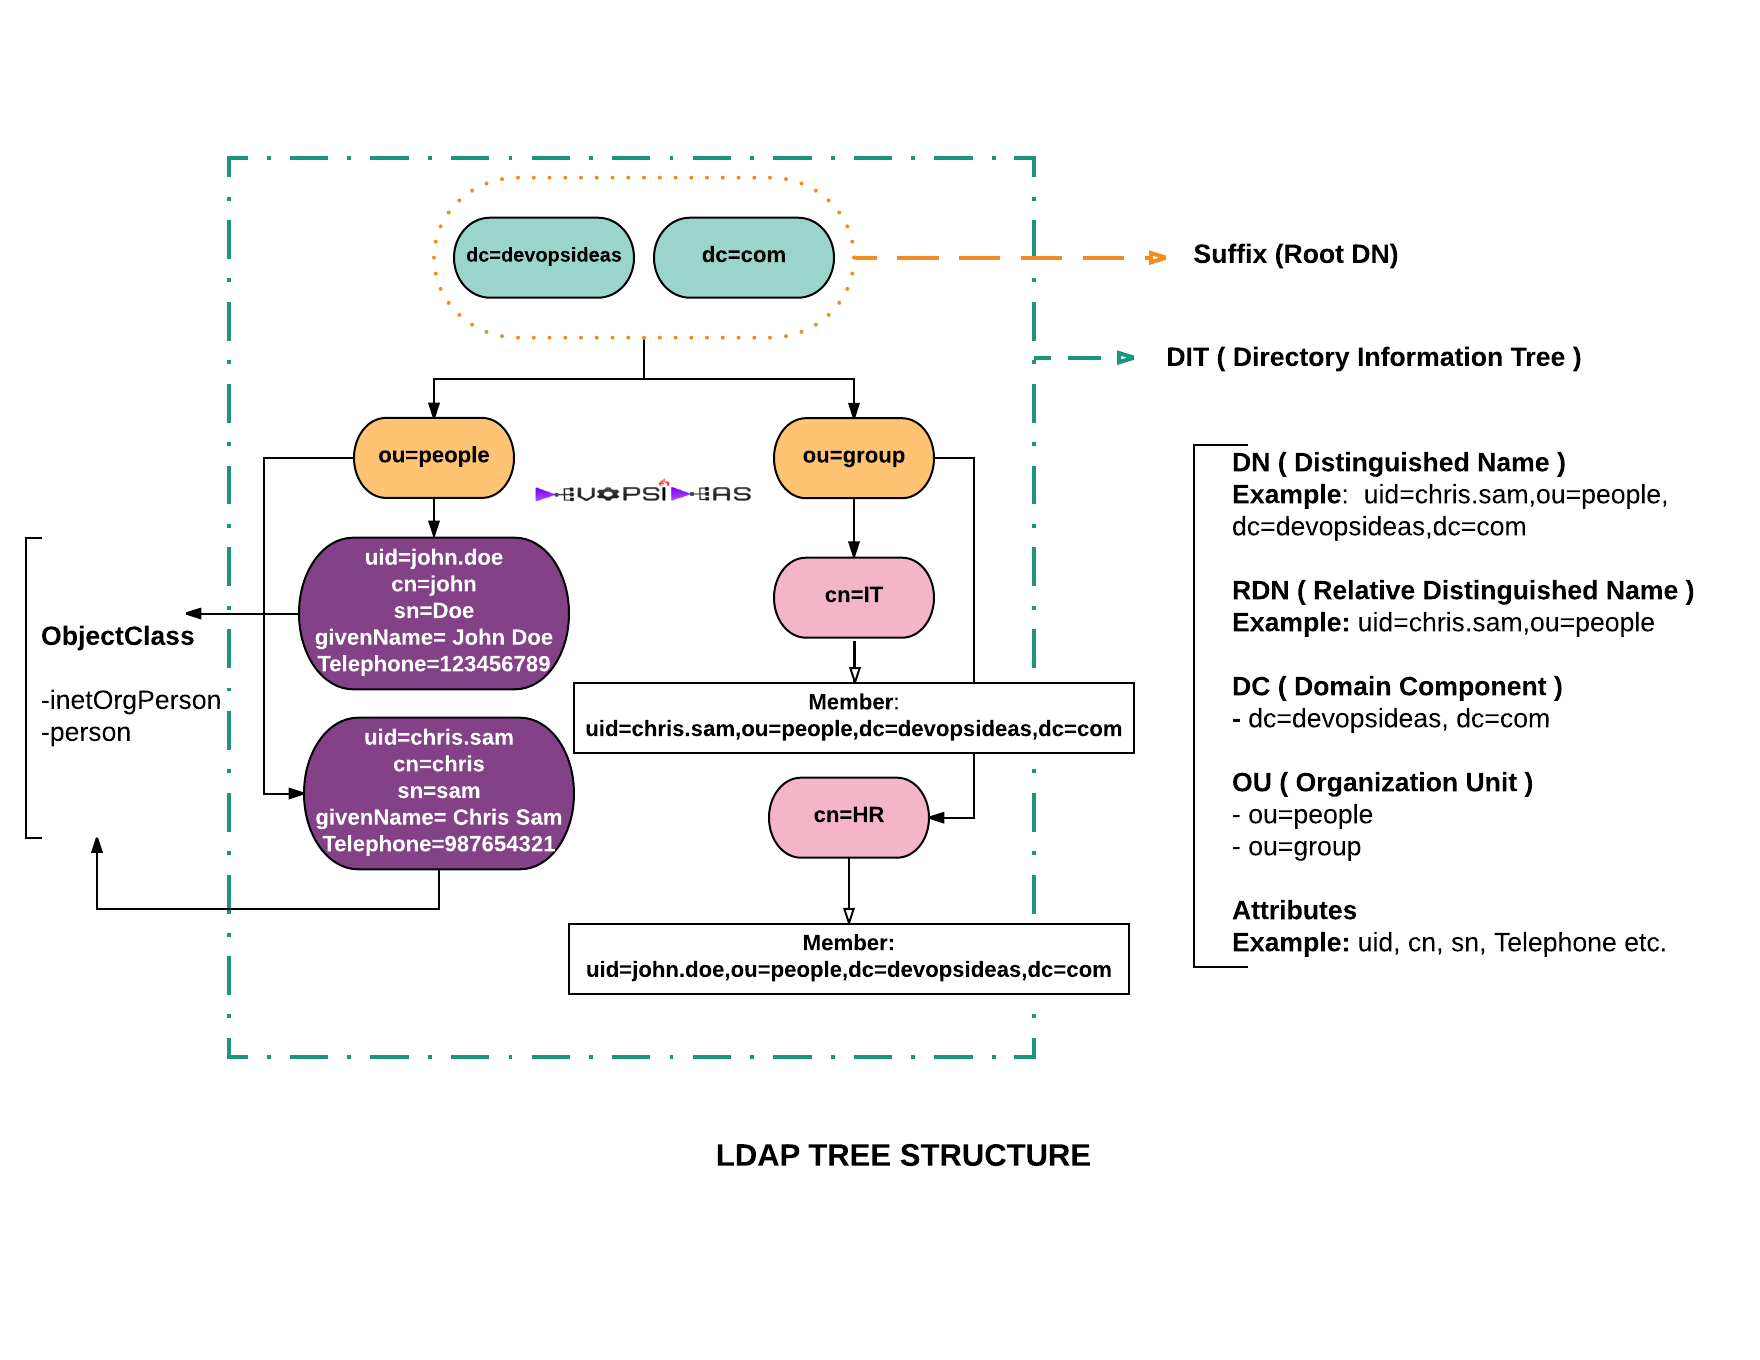 Openldap Tutorial - LDAP TREE STRUCTURE